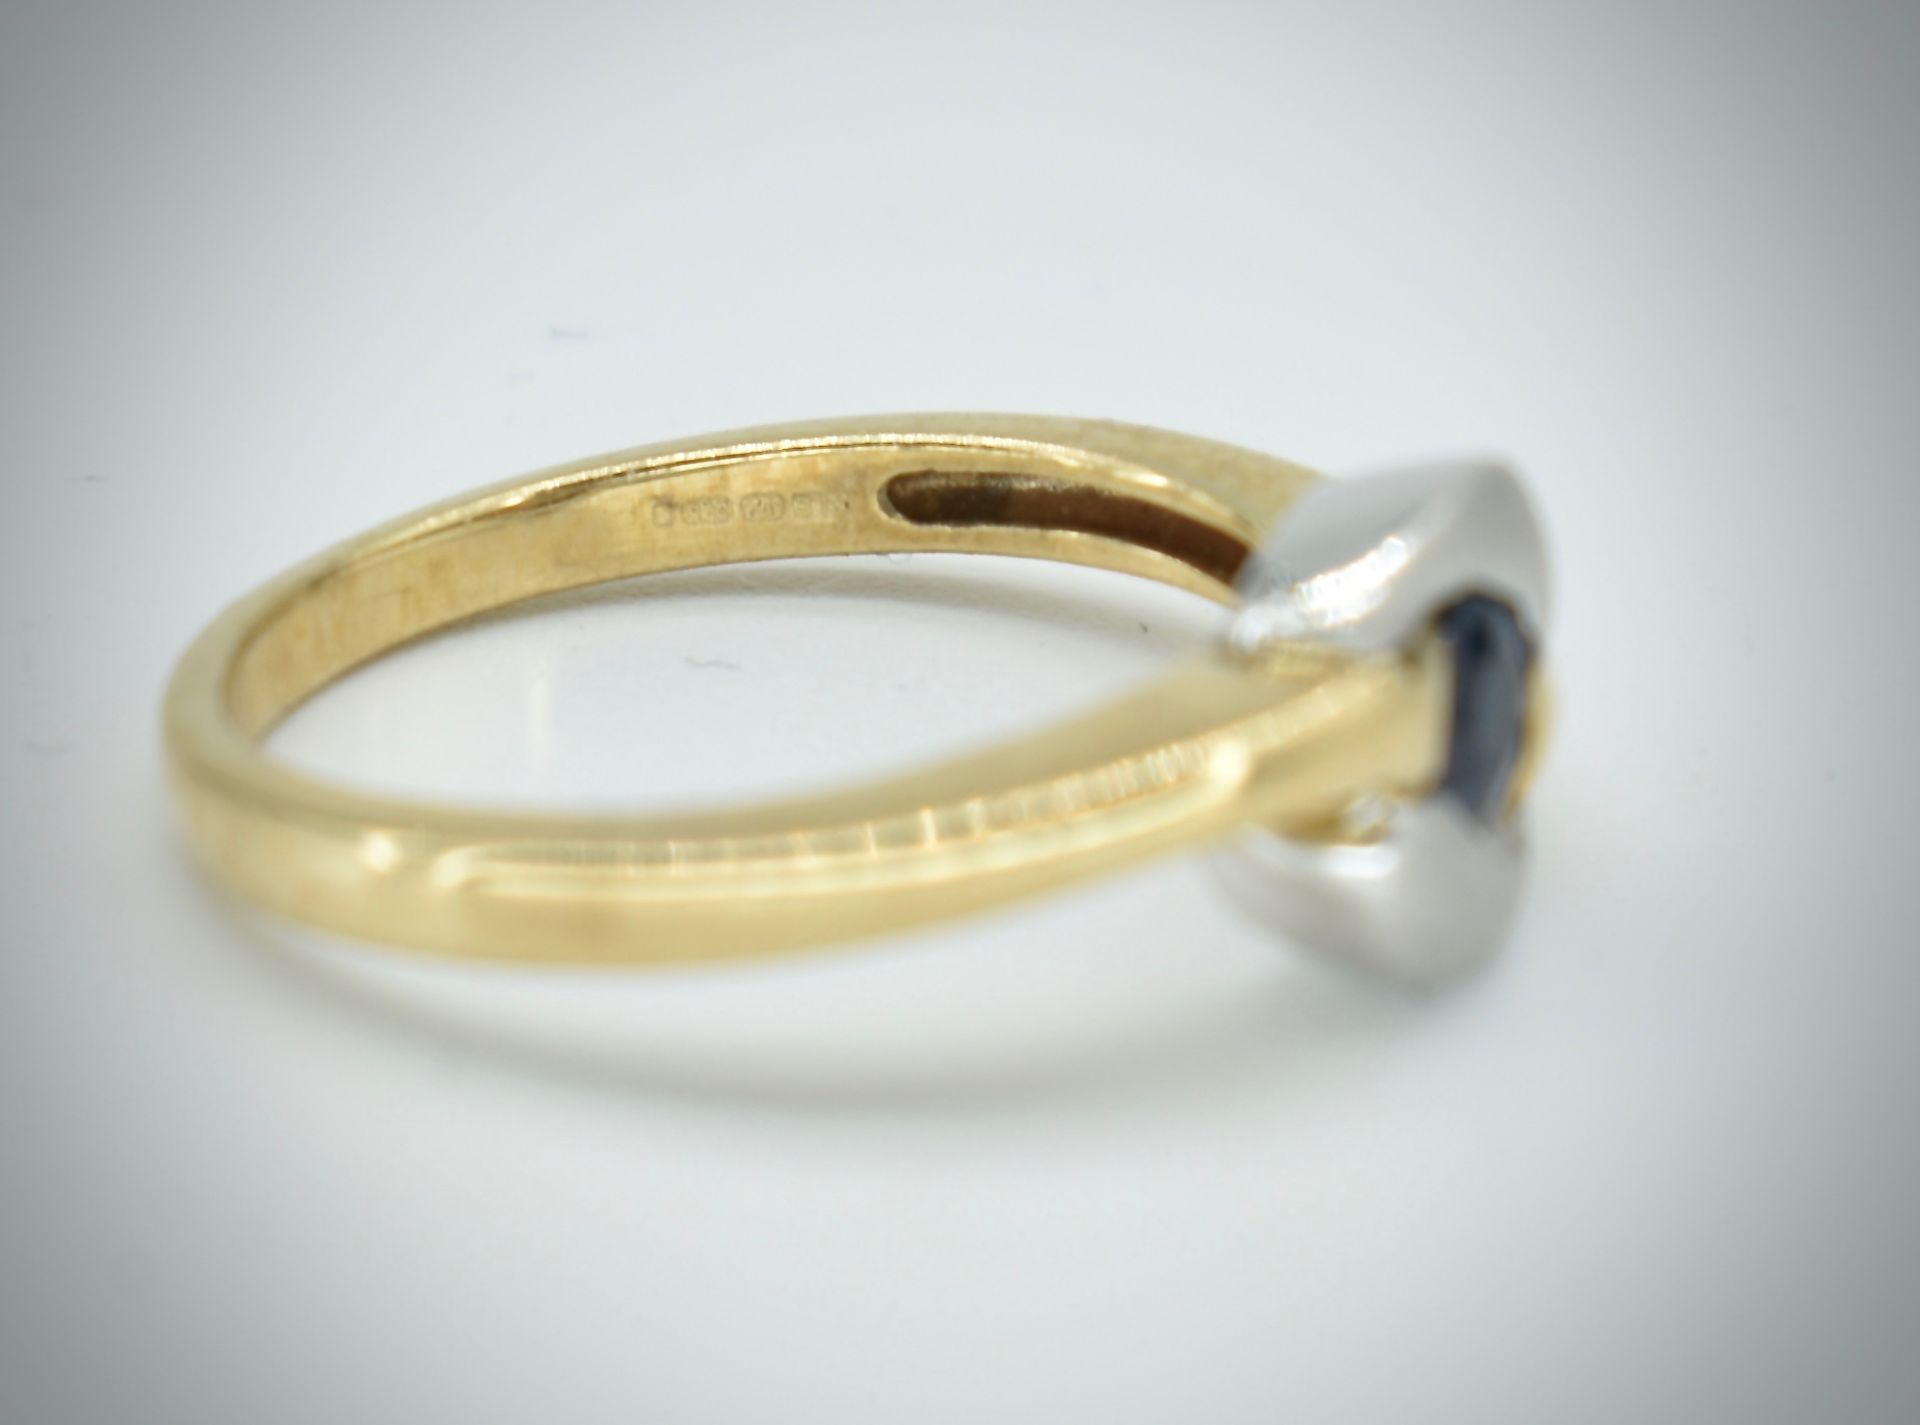 9ct Gold & Sapphire Ring - Image 3 of 5